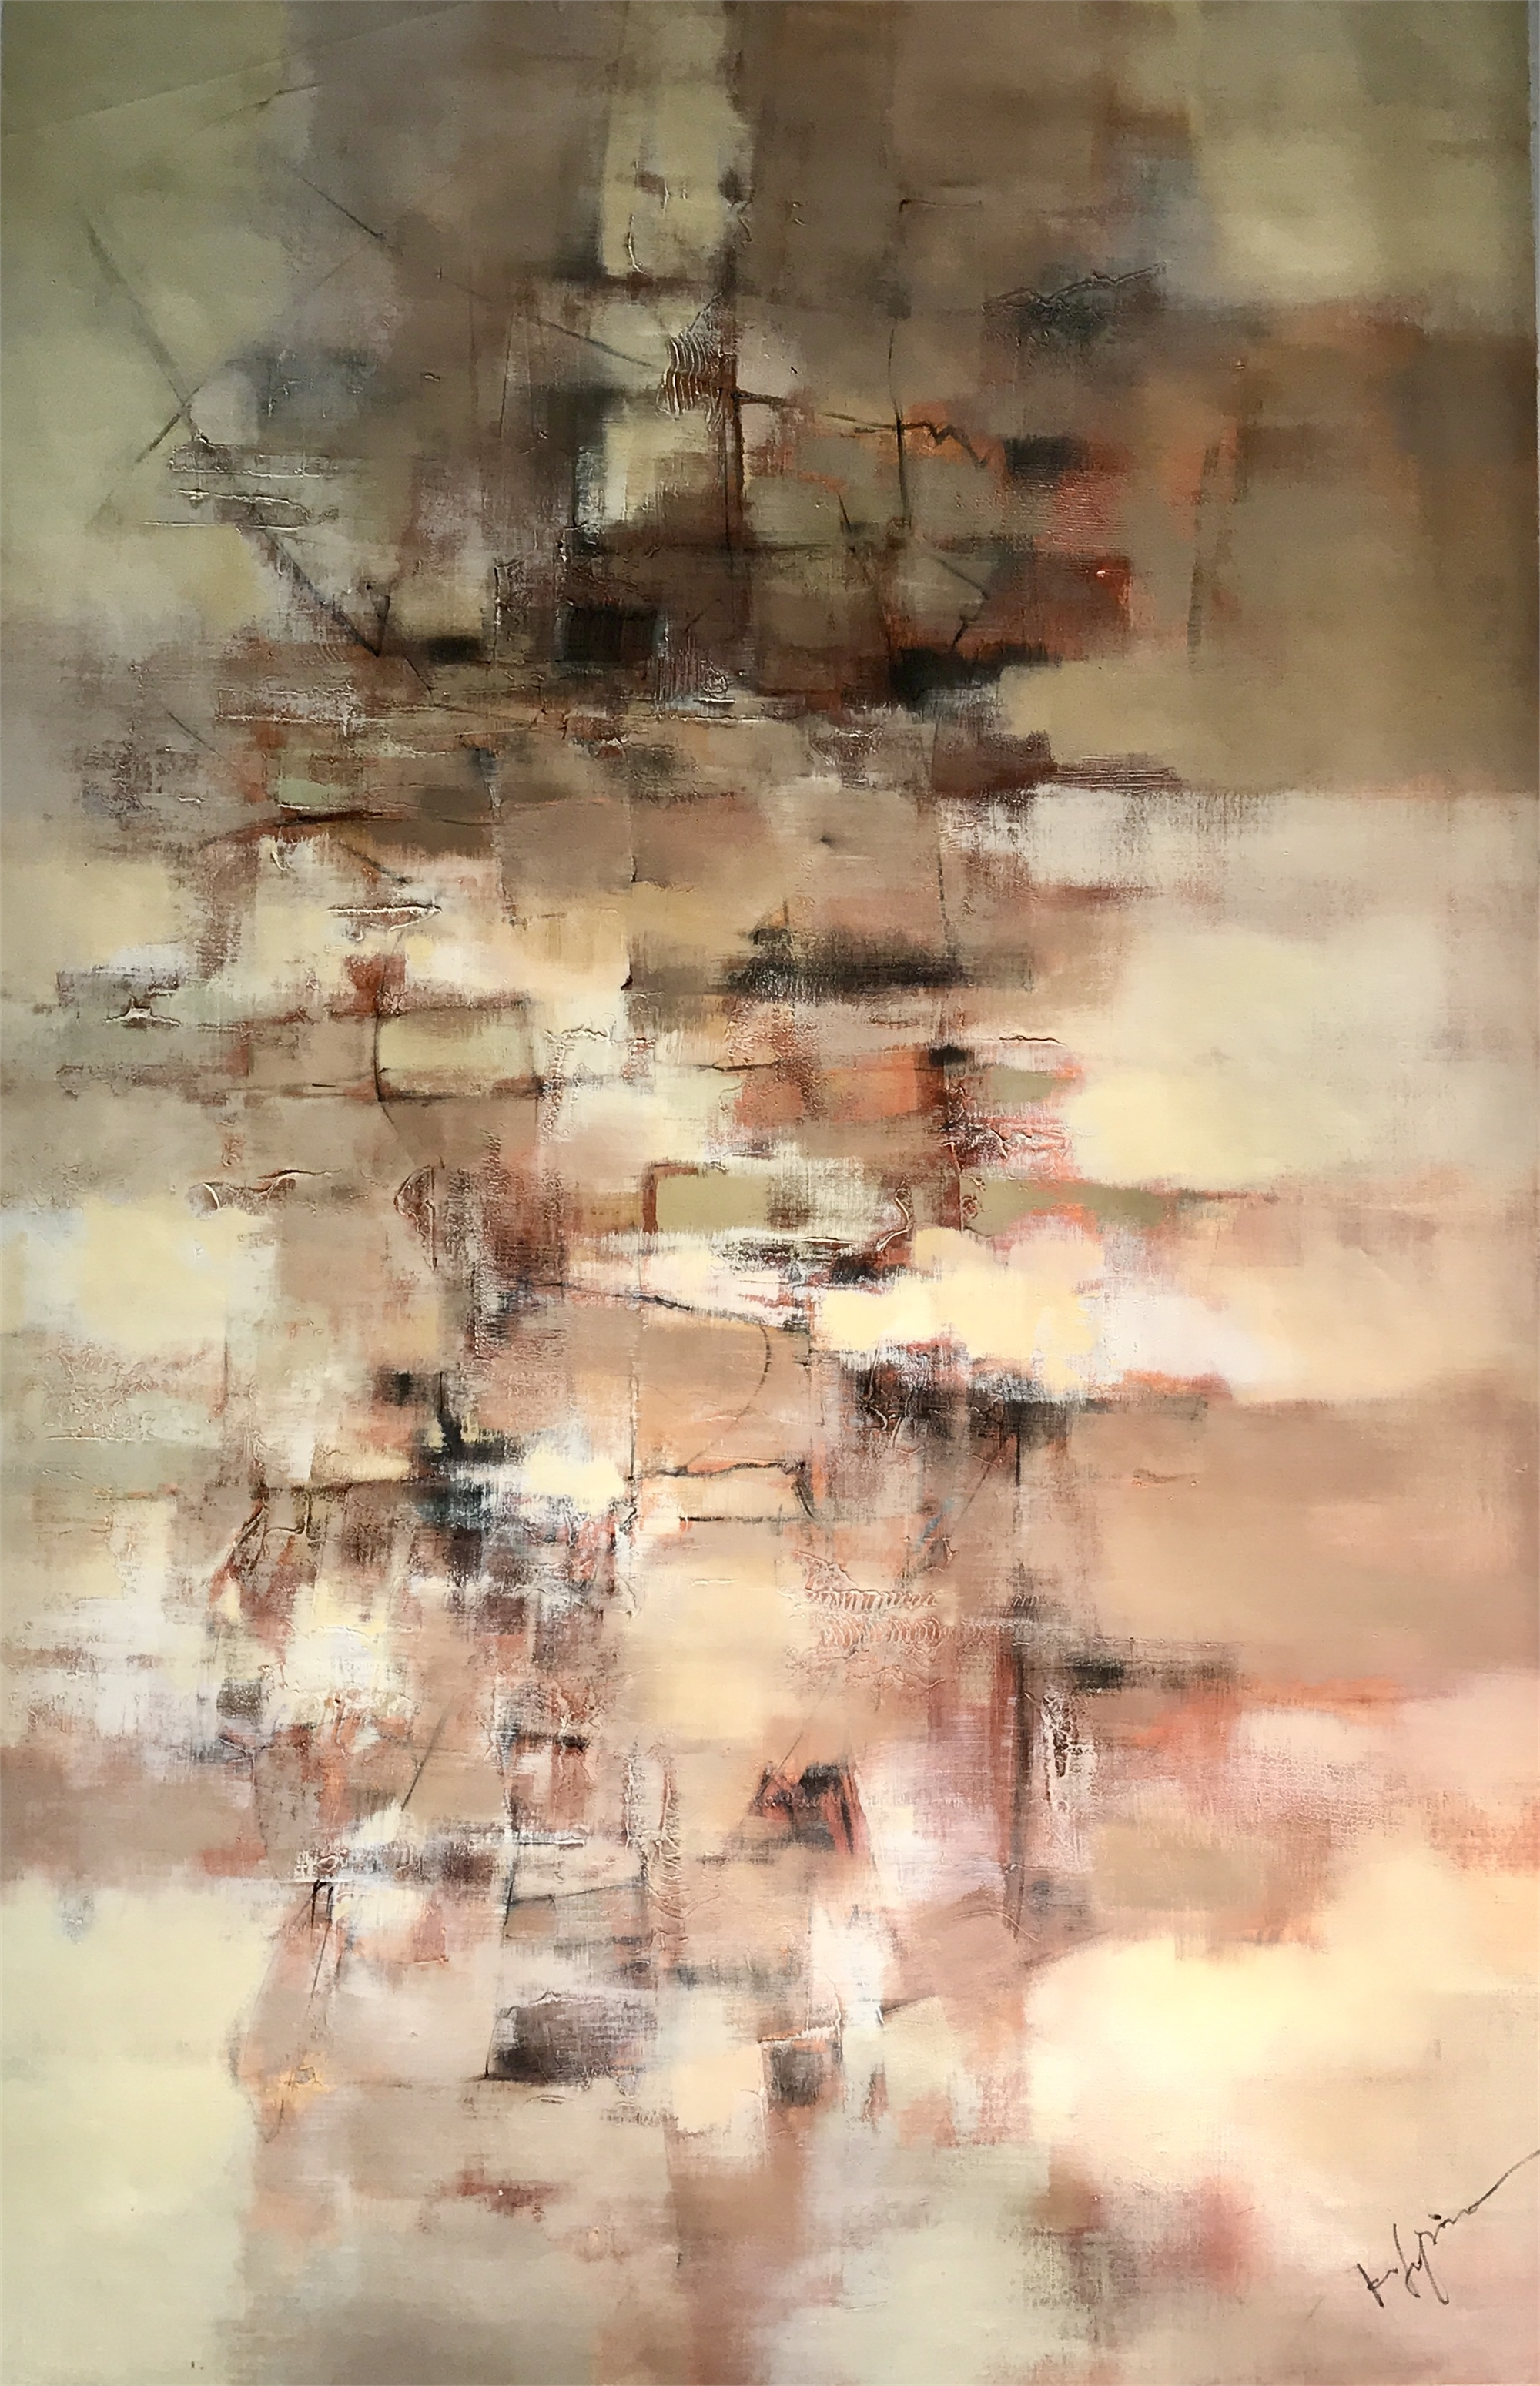 ABSTRACT BROWNS by K. SOPINO